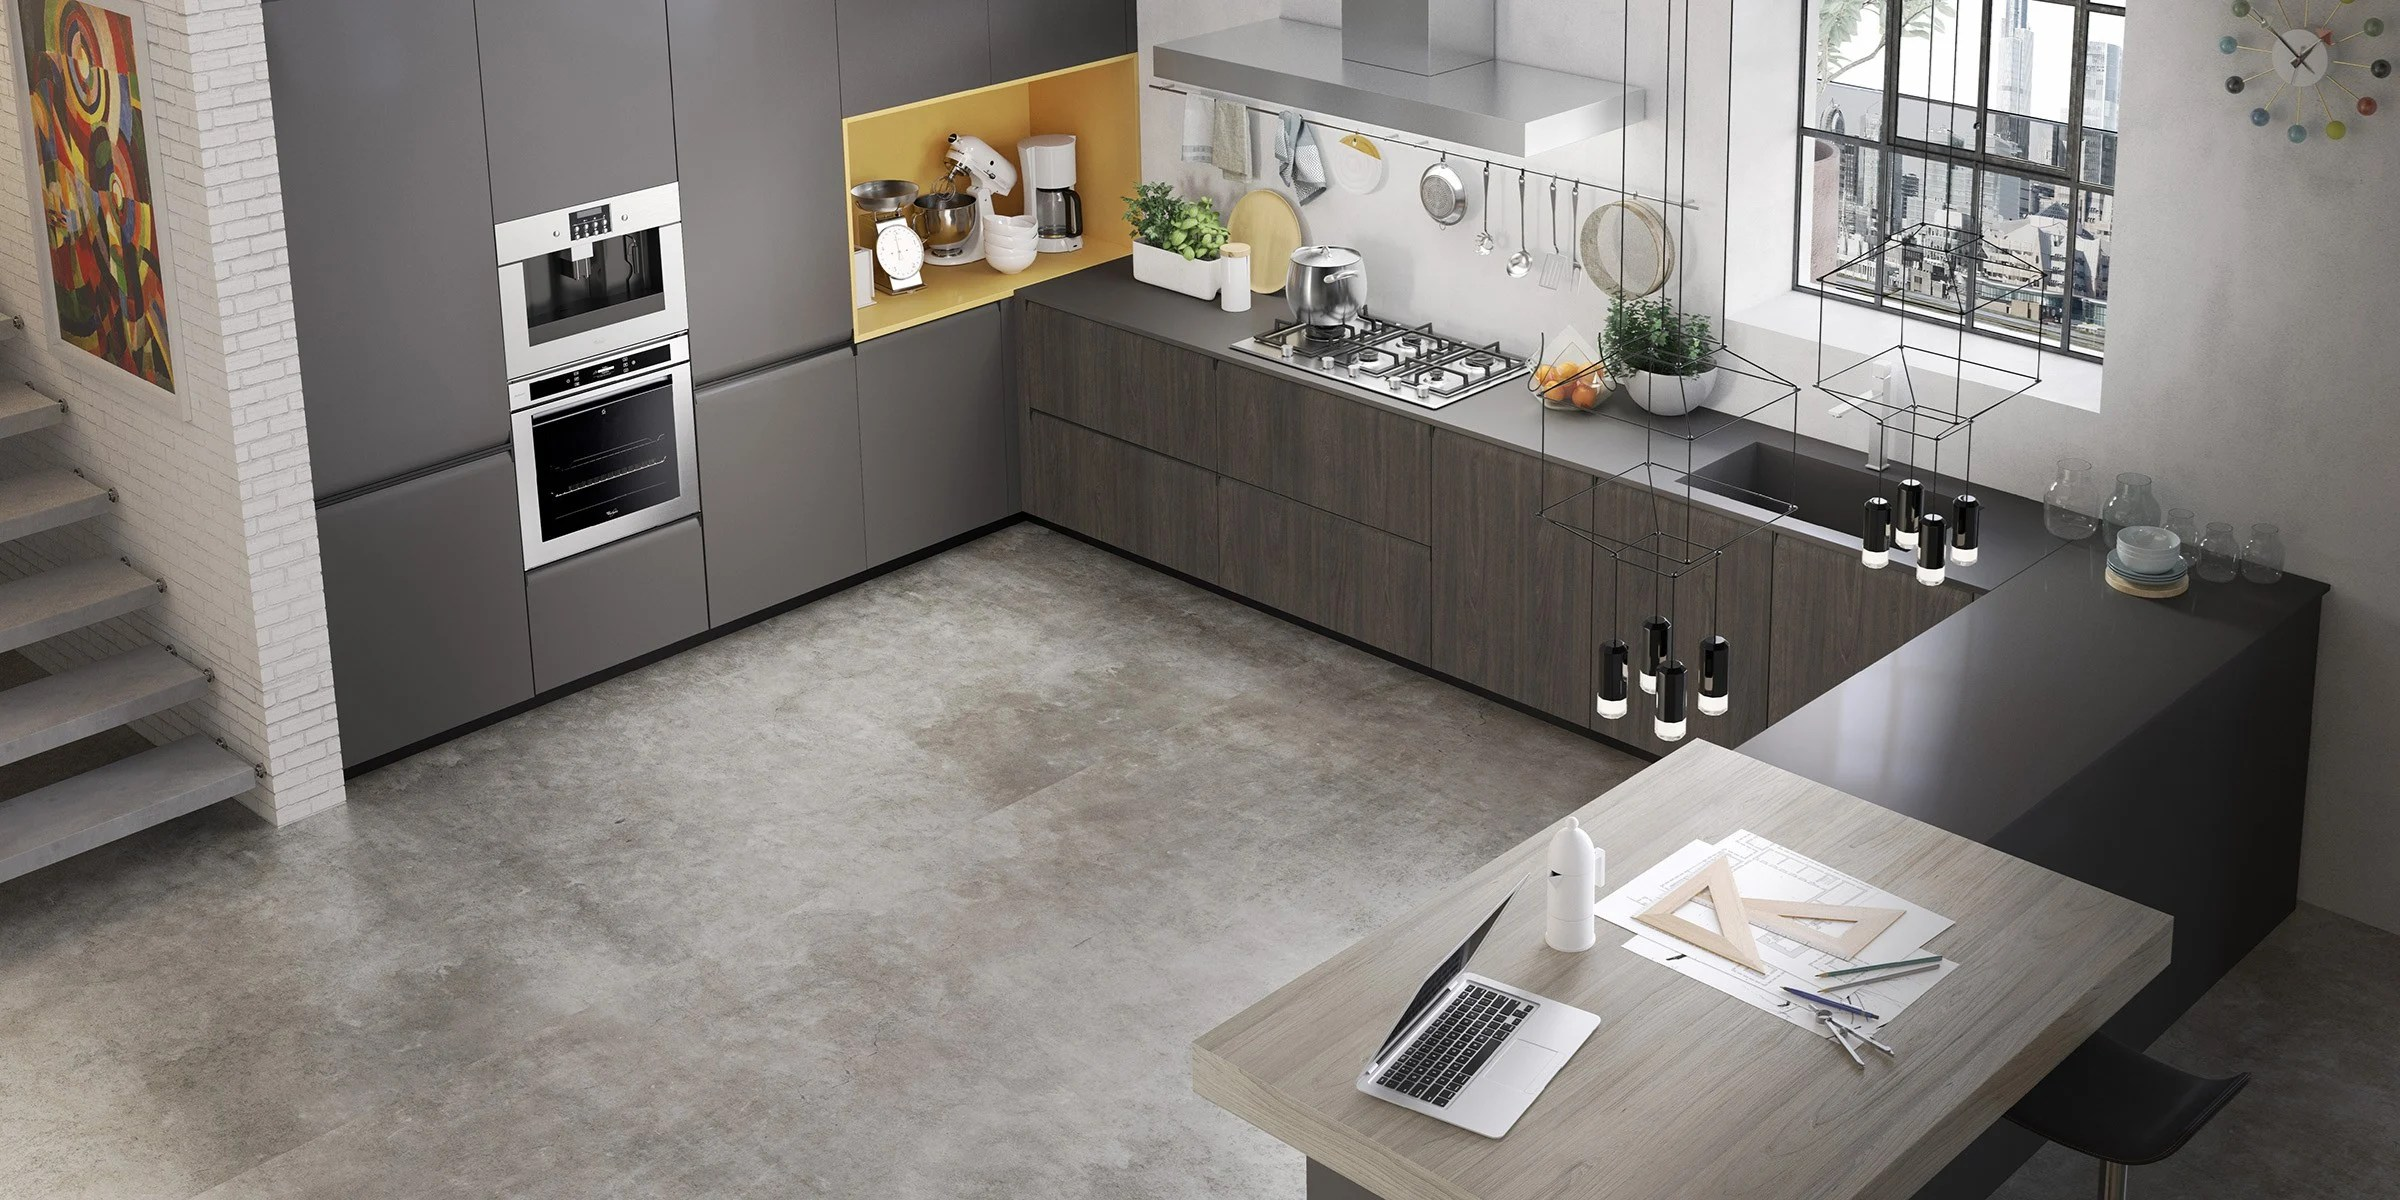 Del Tongo Cucine Catalogo